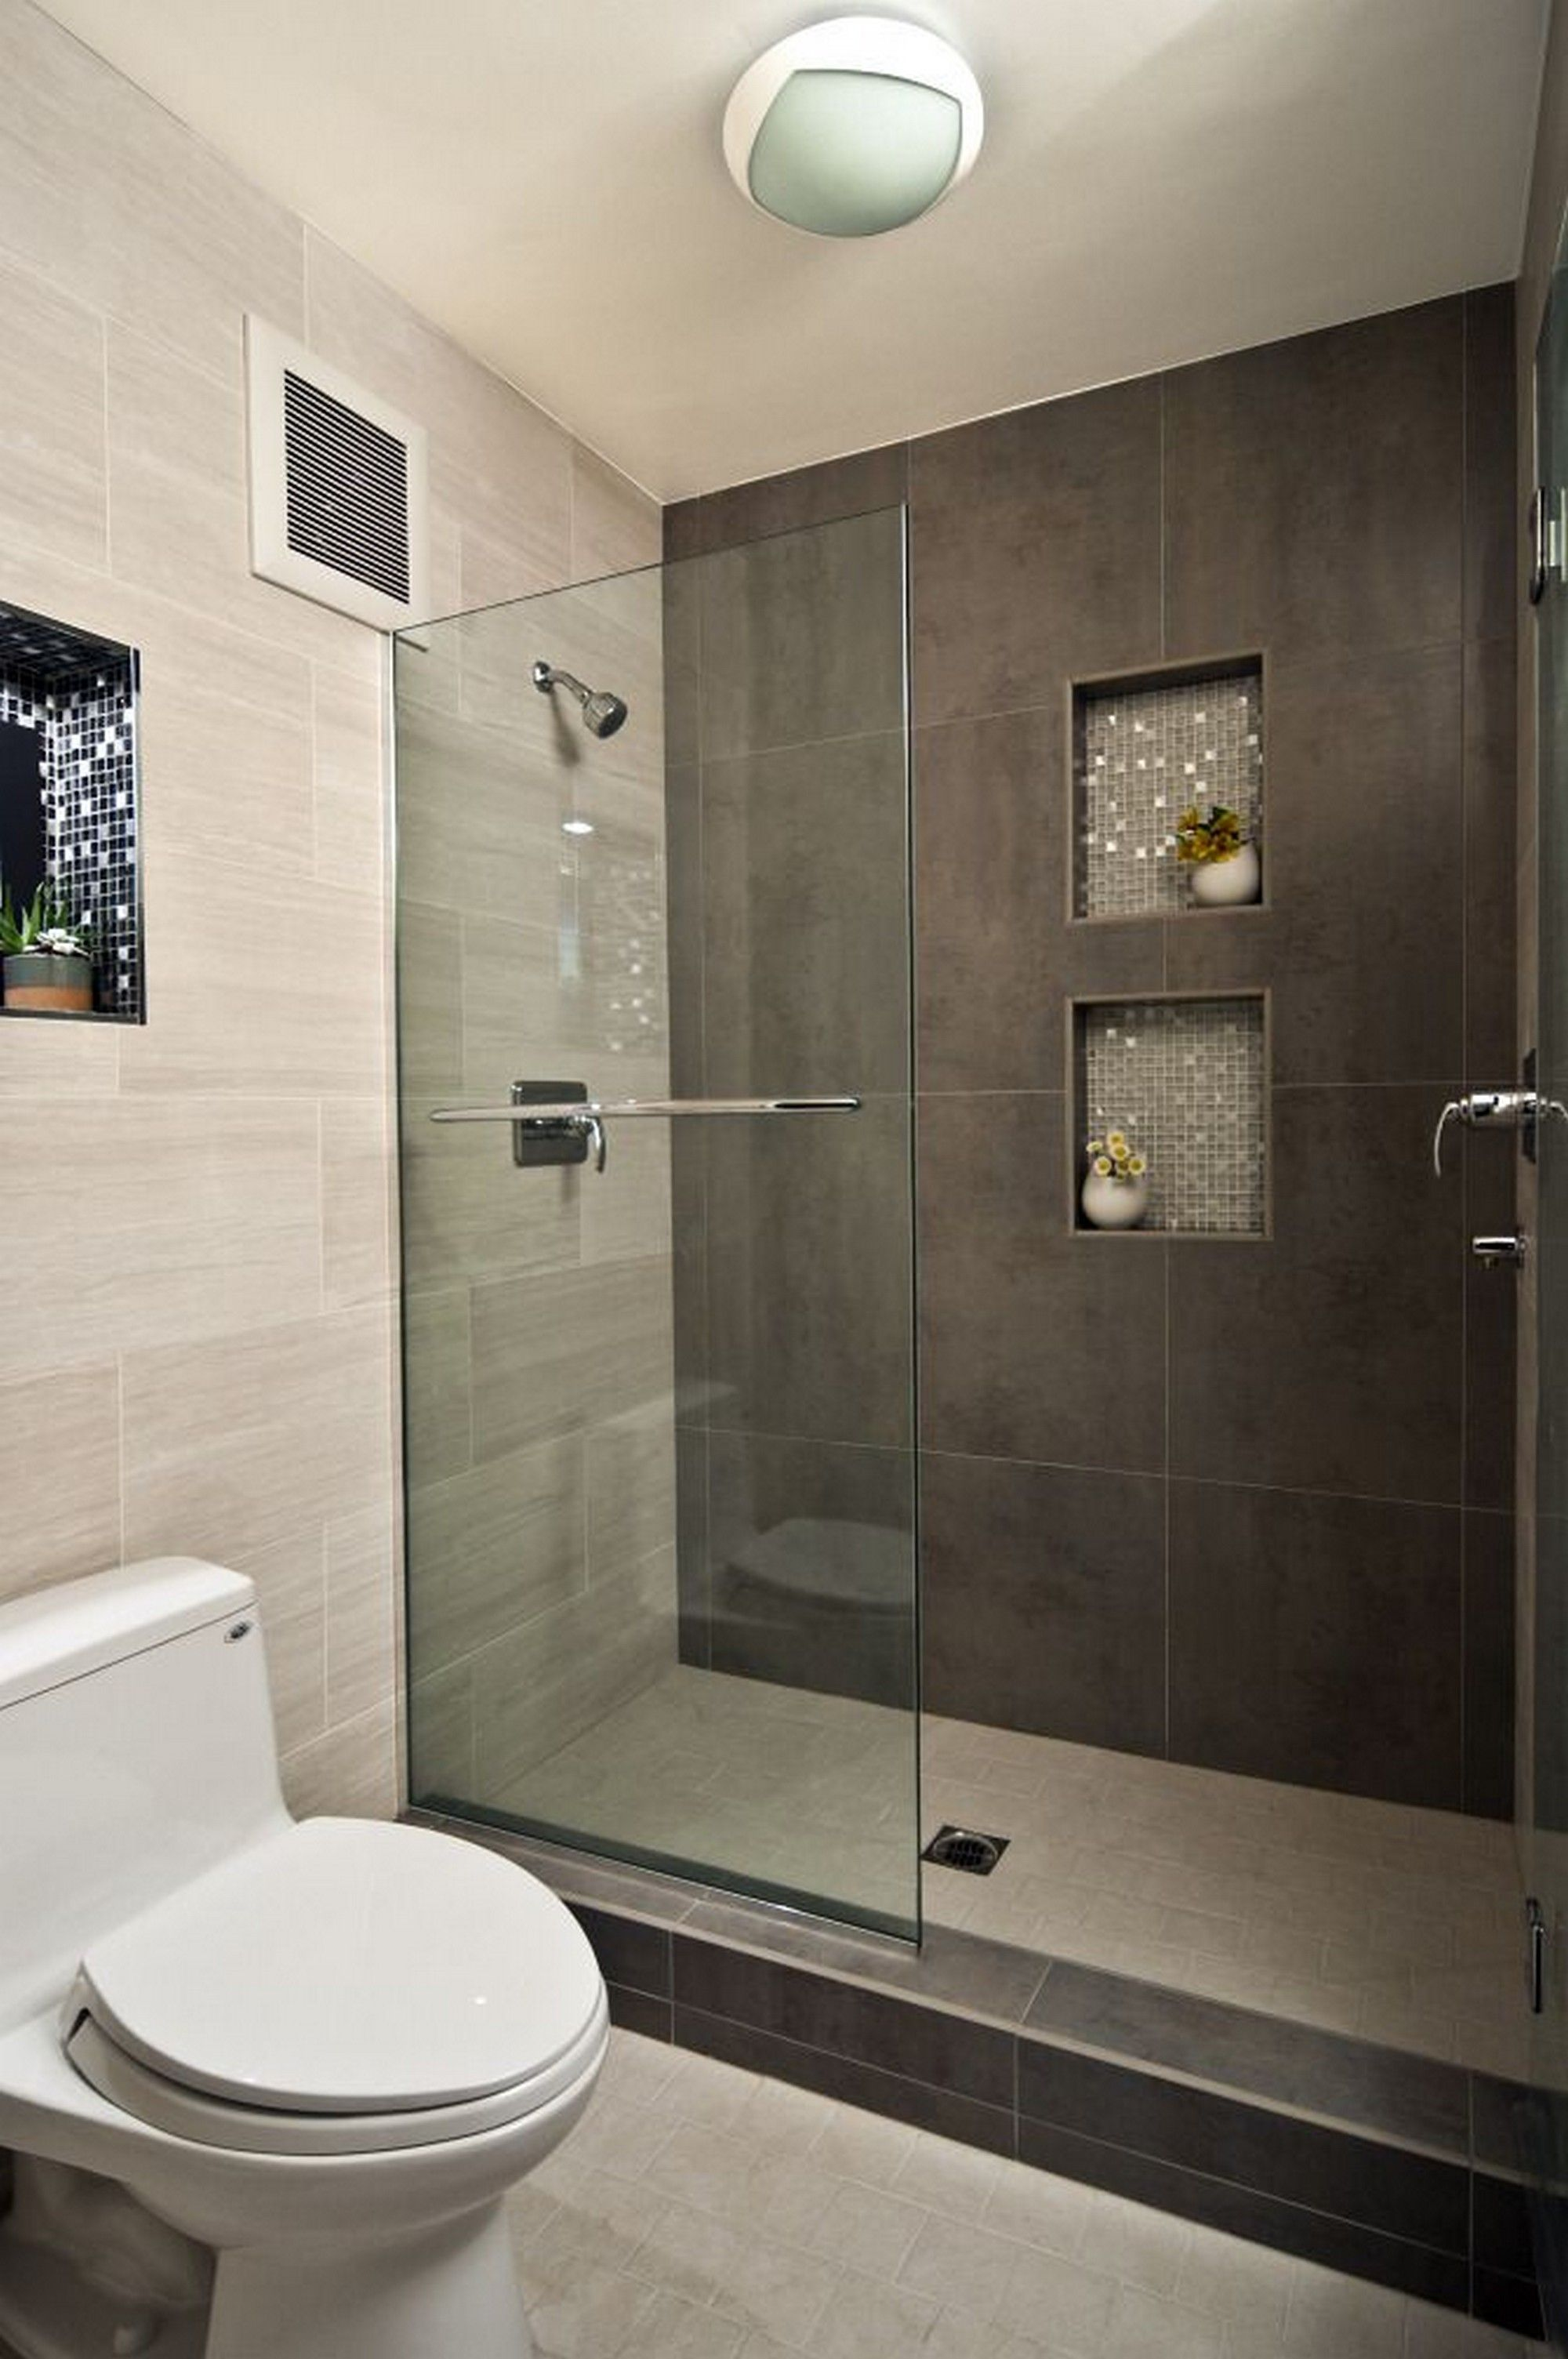 Modern bathroom design ideas with walk in shower small for Small bathroom design this site